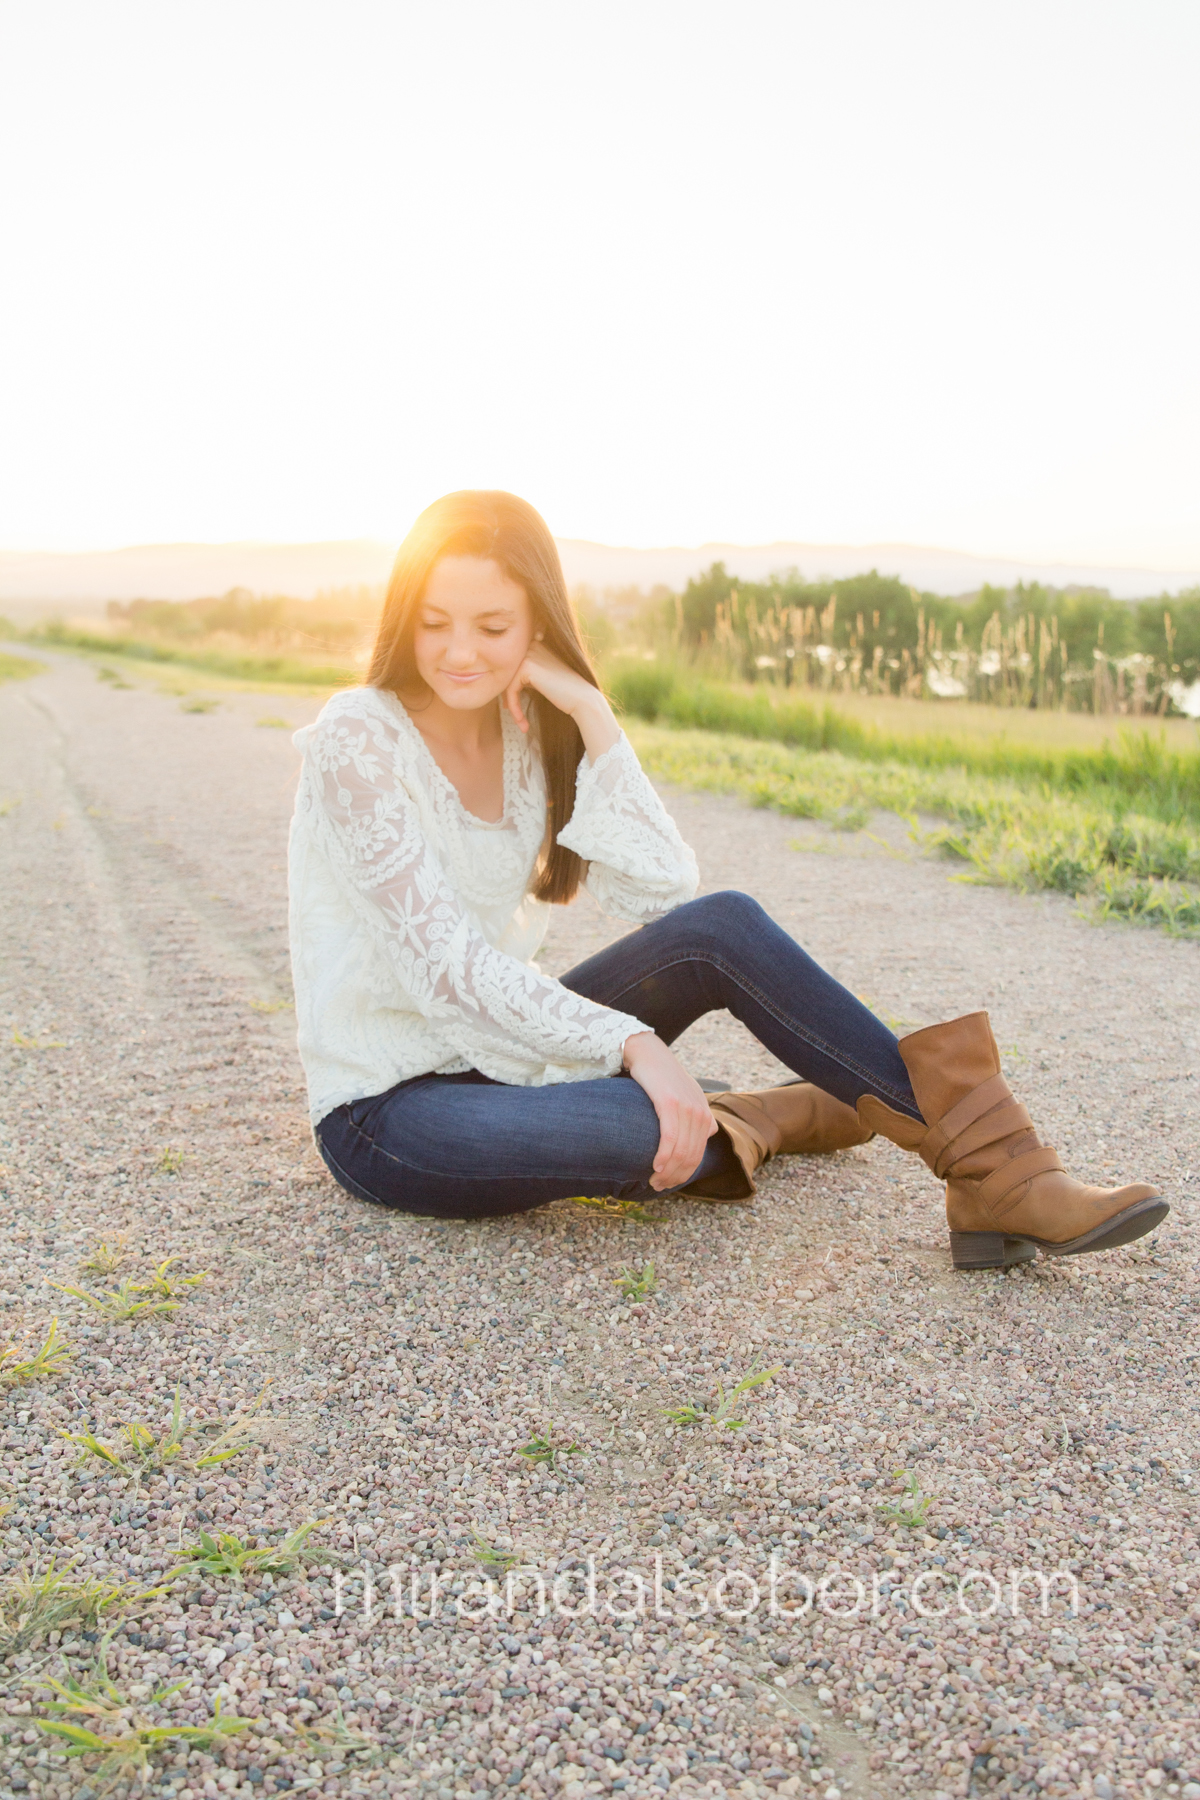 denver senior photographer, Miranda L. Sober Photography